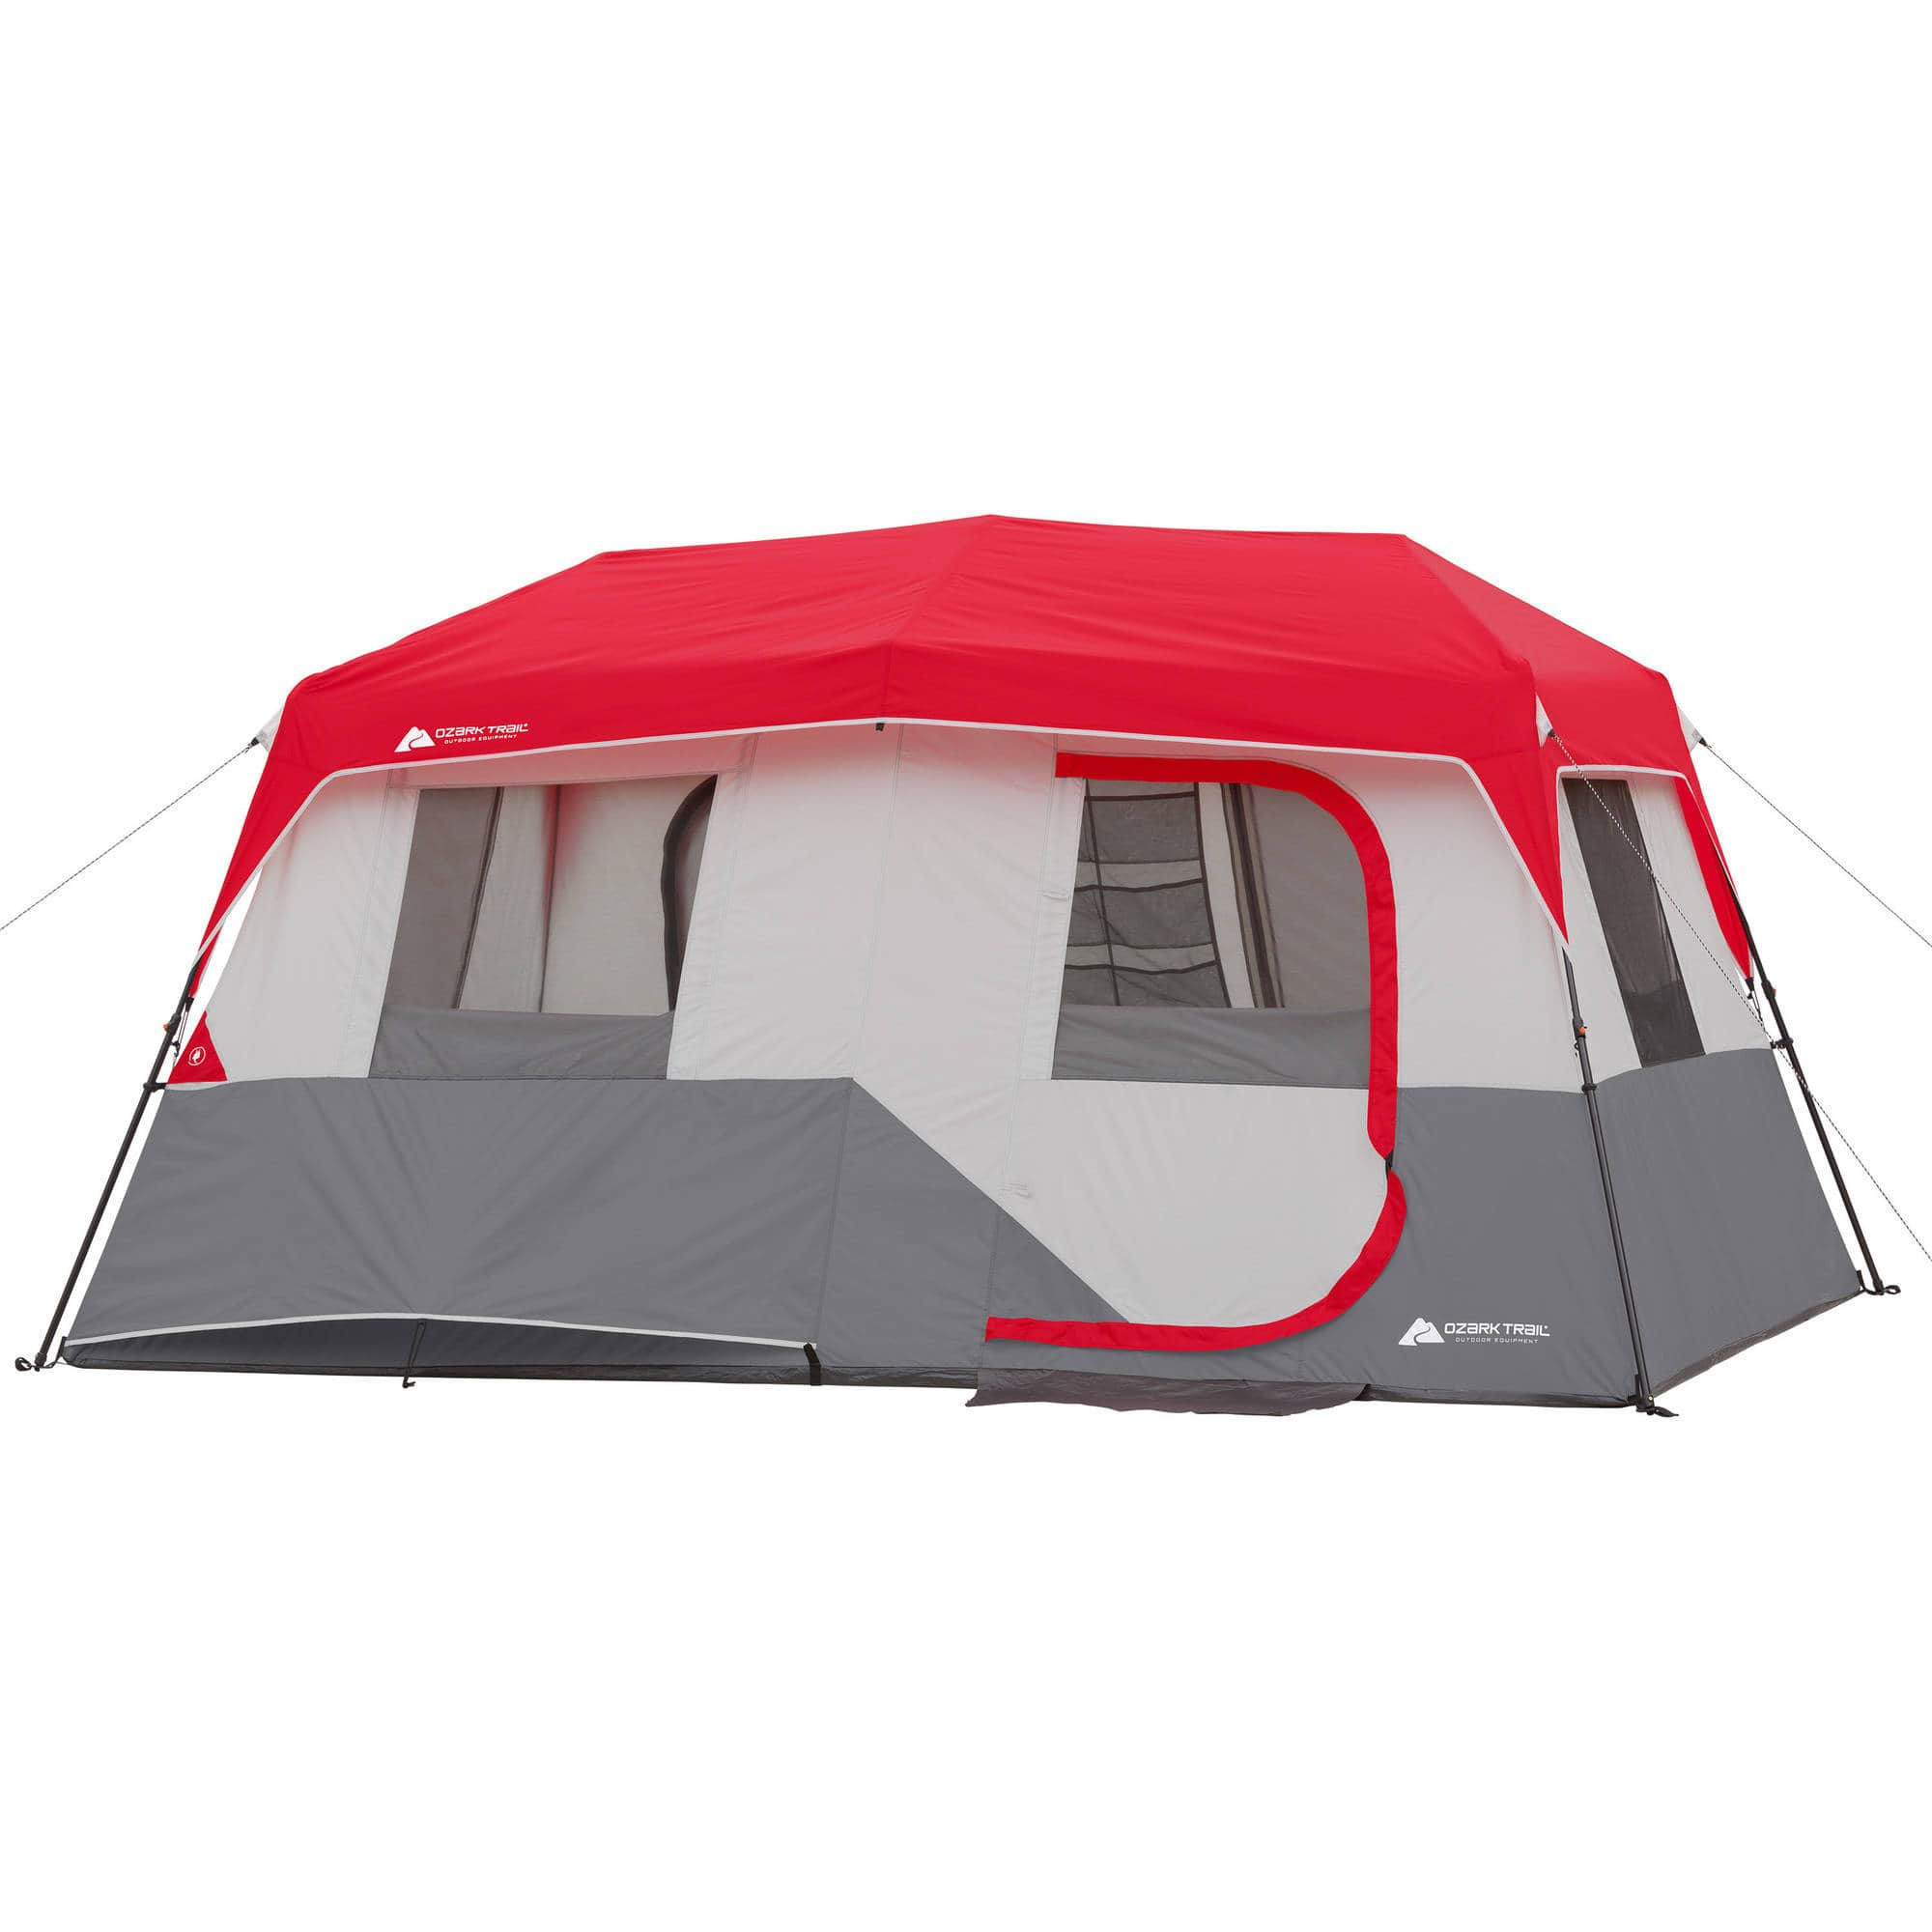 Deal Image  sc 1 st  Slickdeals & Ozark Trail 8-Person Instant Cabin Tent w/ Rainfly - Slickdeals.net